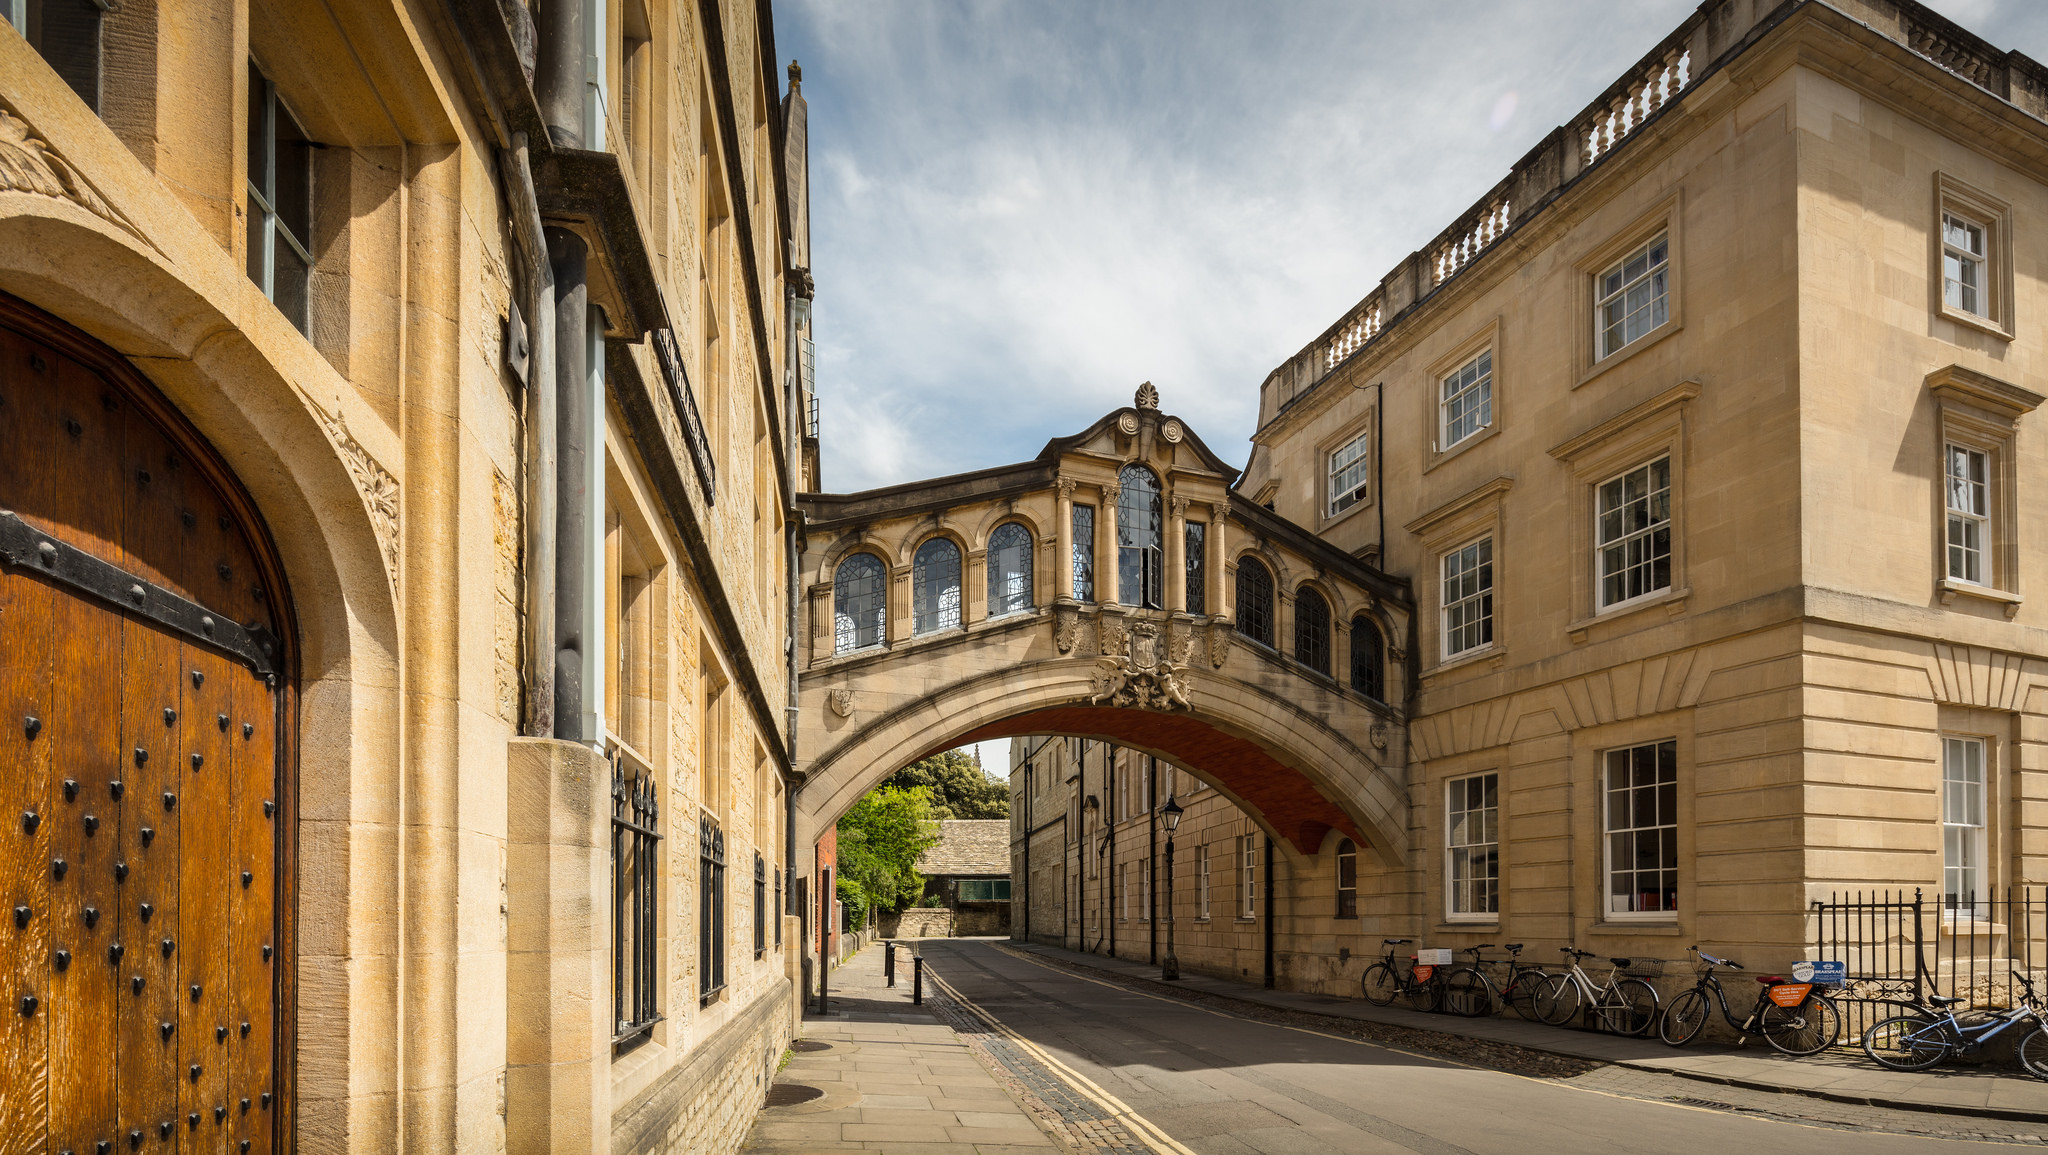 Oxford colleges not unanimously against pension reform